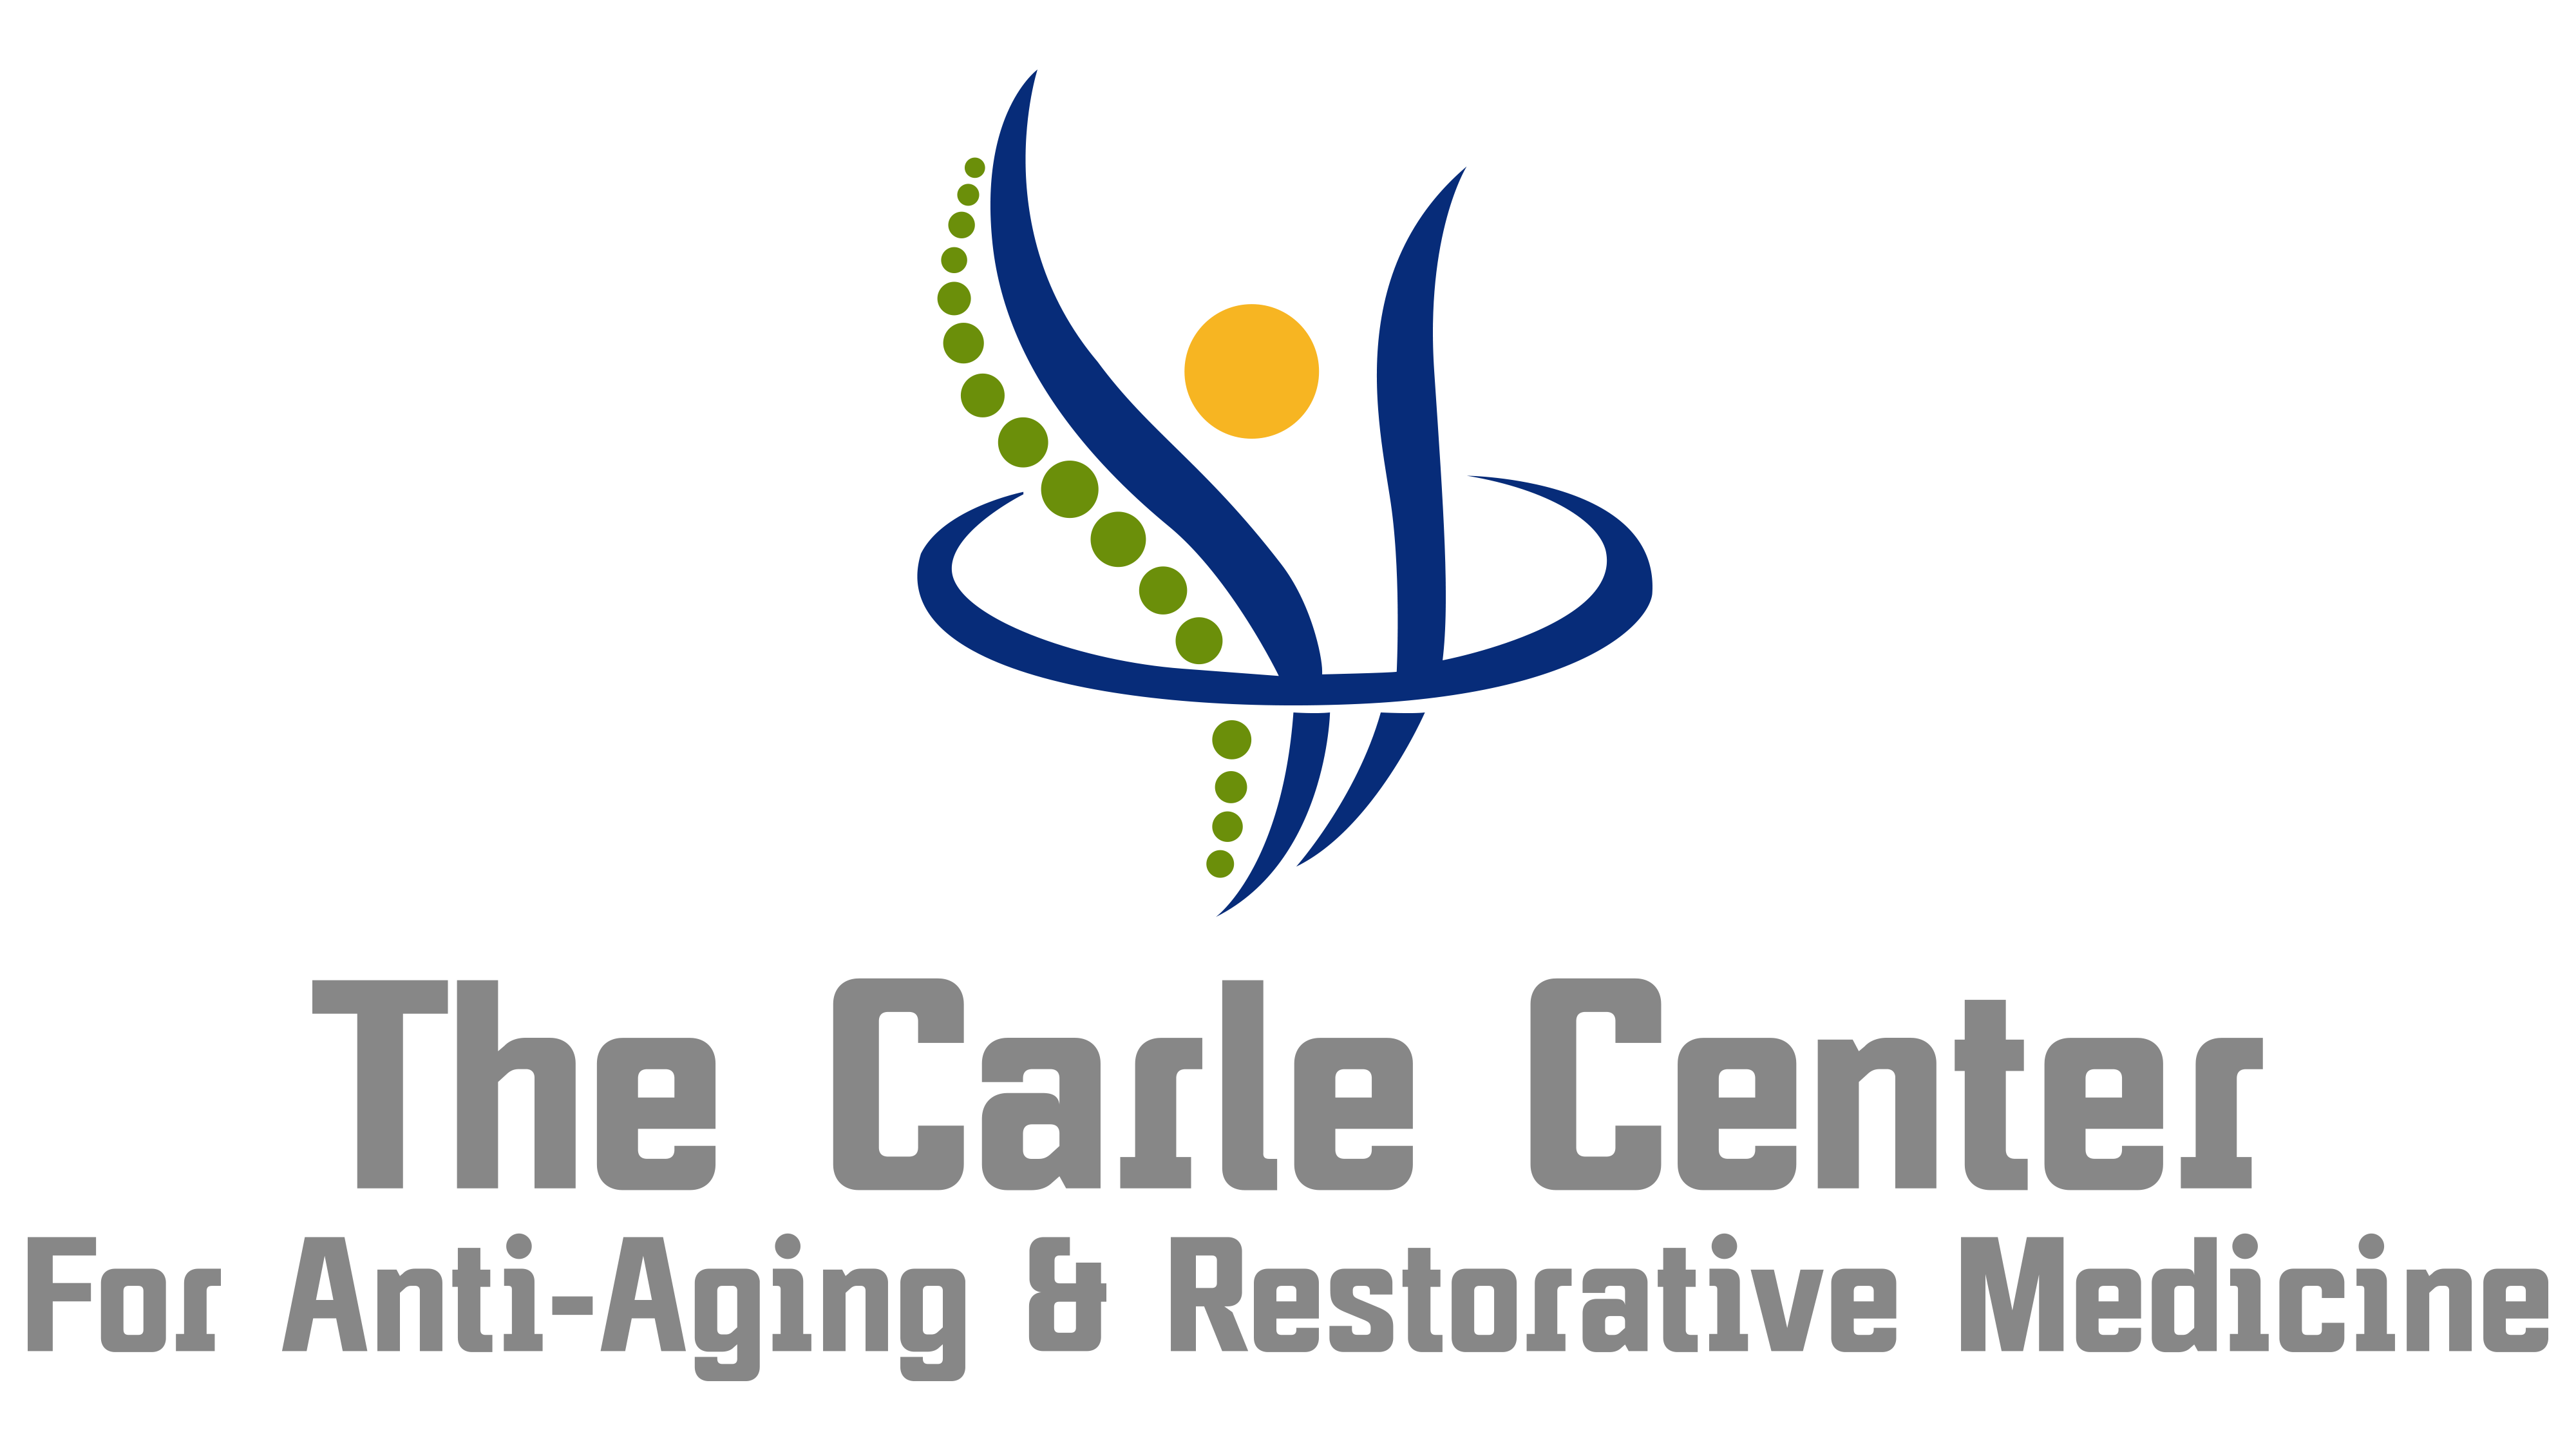 The Carle Center